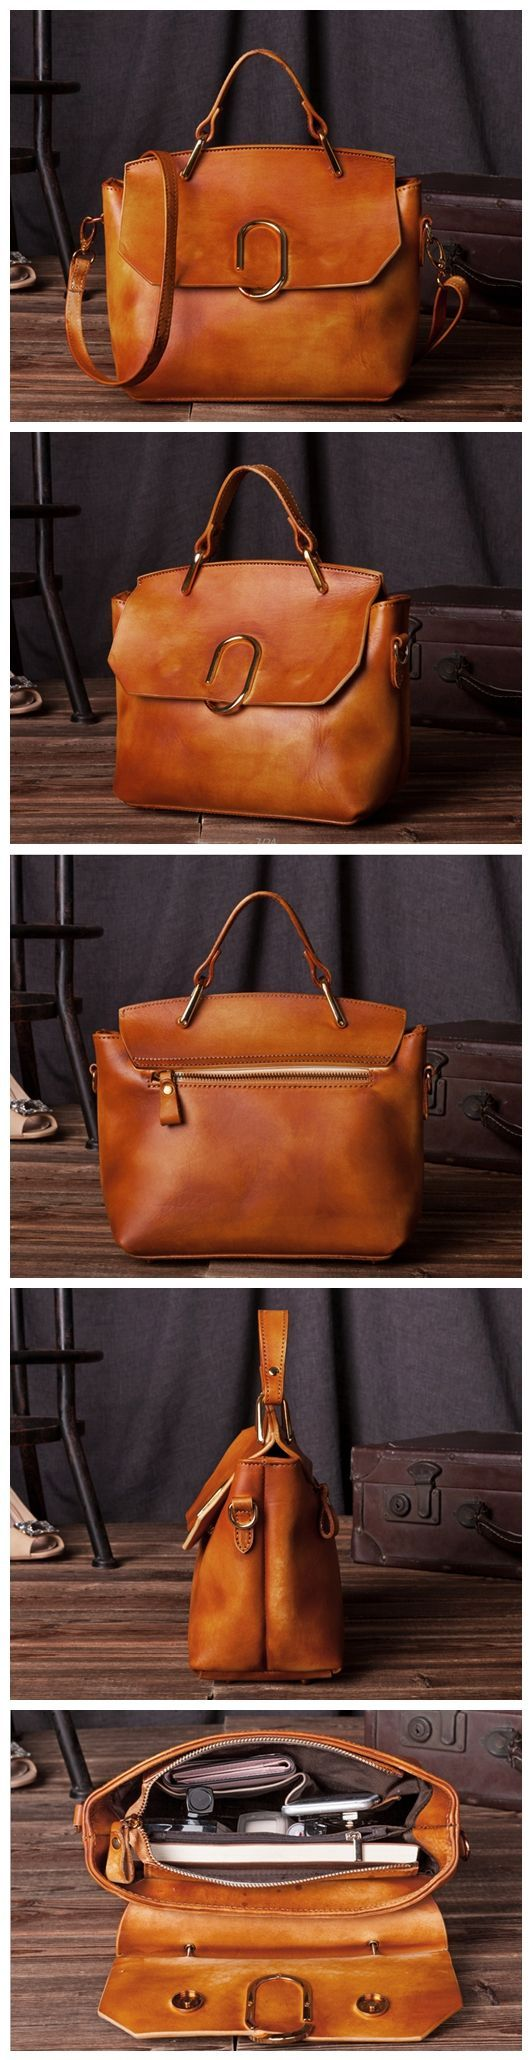 Handcrafted Women Modern Fashion Leather Tote Bag Handbag Shoulder Bag Messenger C204 Overview: Design: Vintage Vegetable Tanned Leather Tote In Stock: 4-5 days For Making Include: Only Tote Bag Color